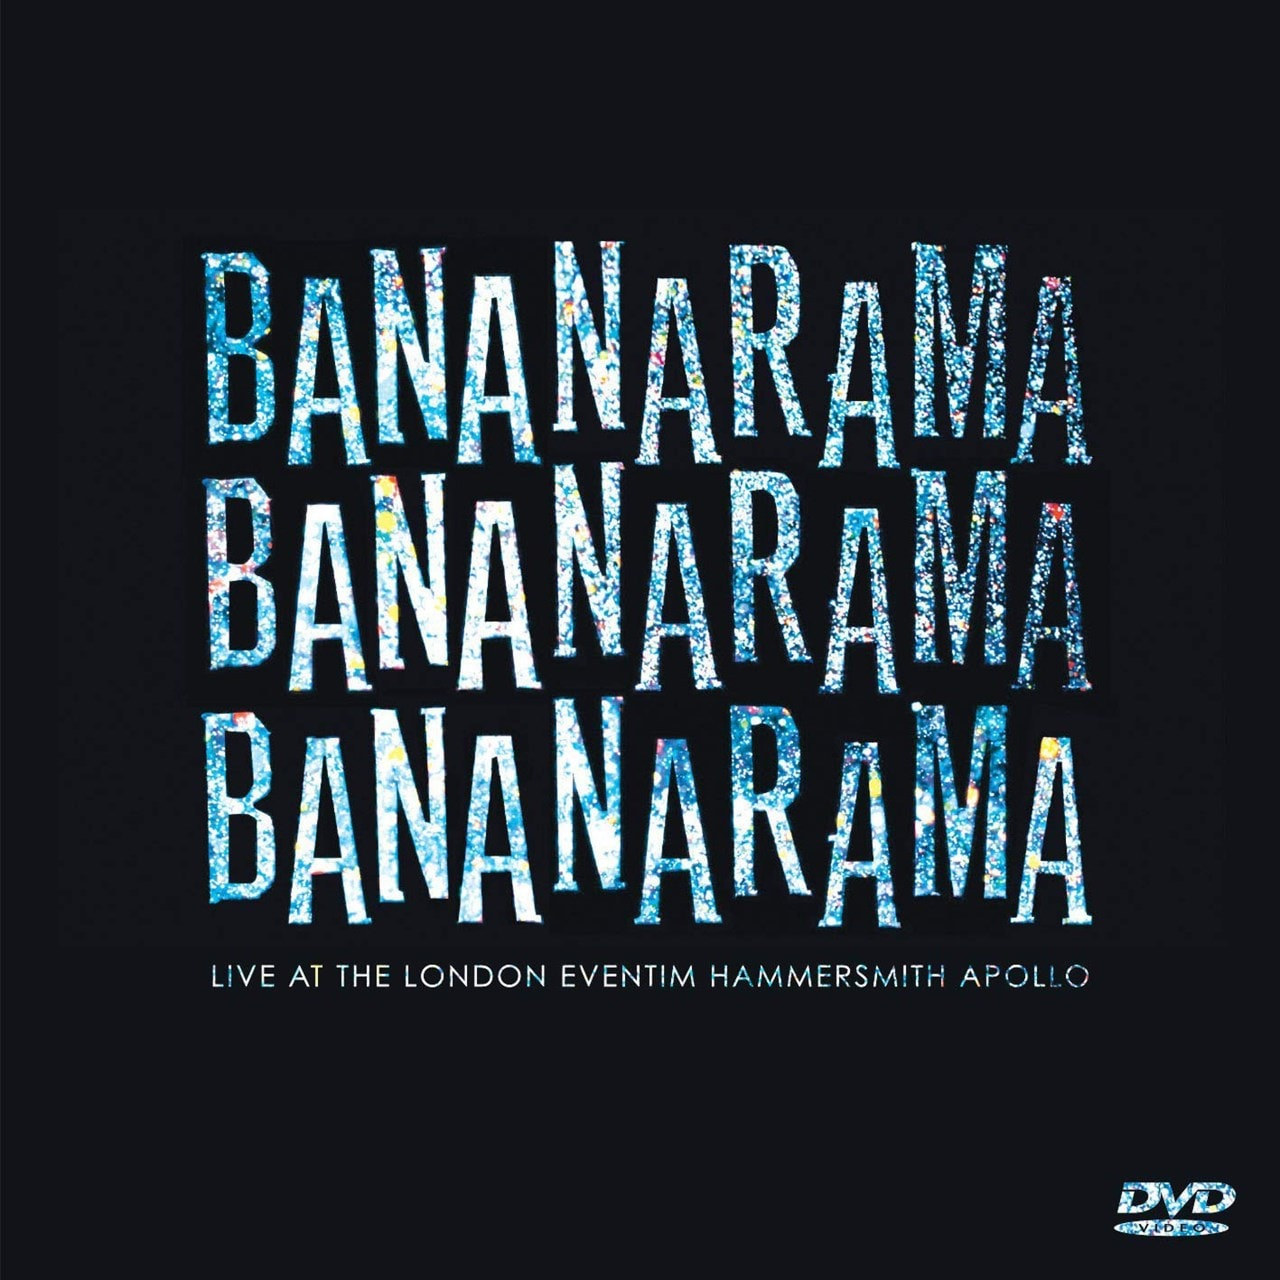 Live at the London Eventim Hammersmith Apollo - 1